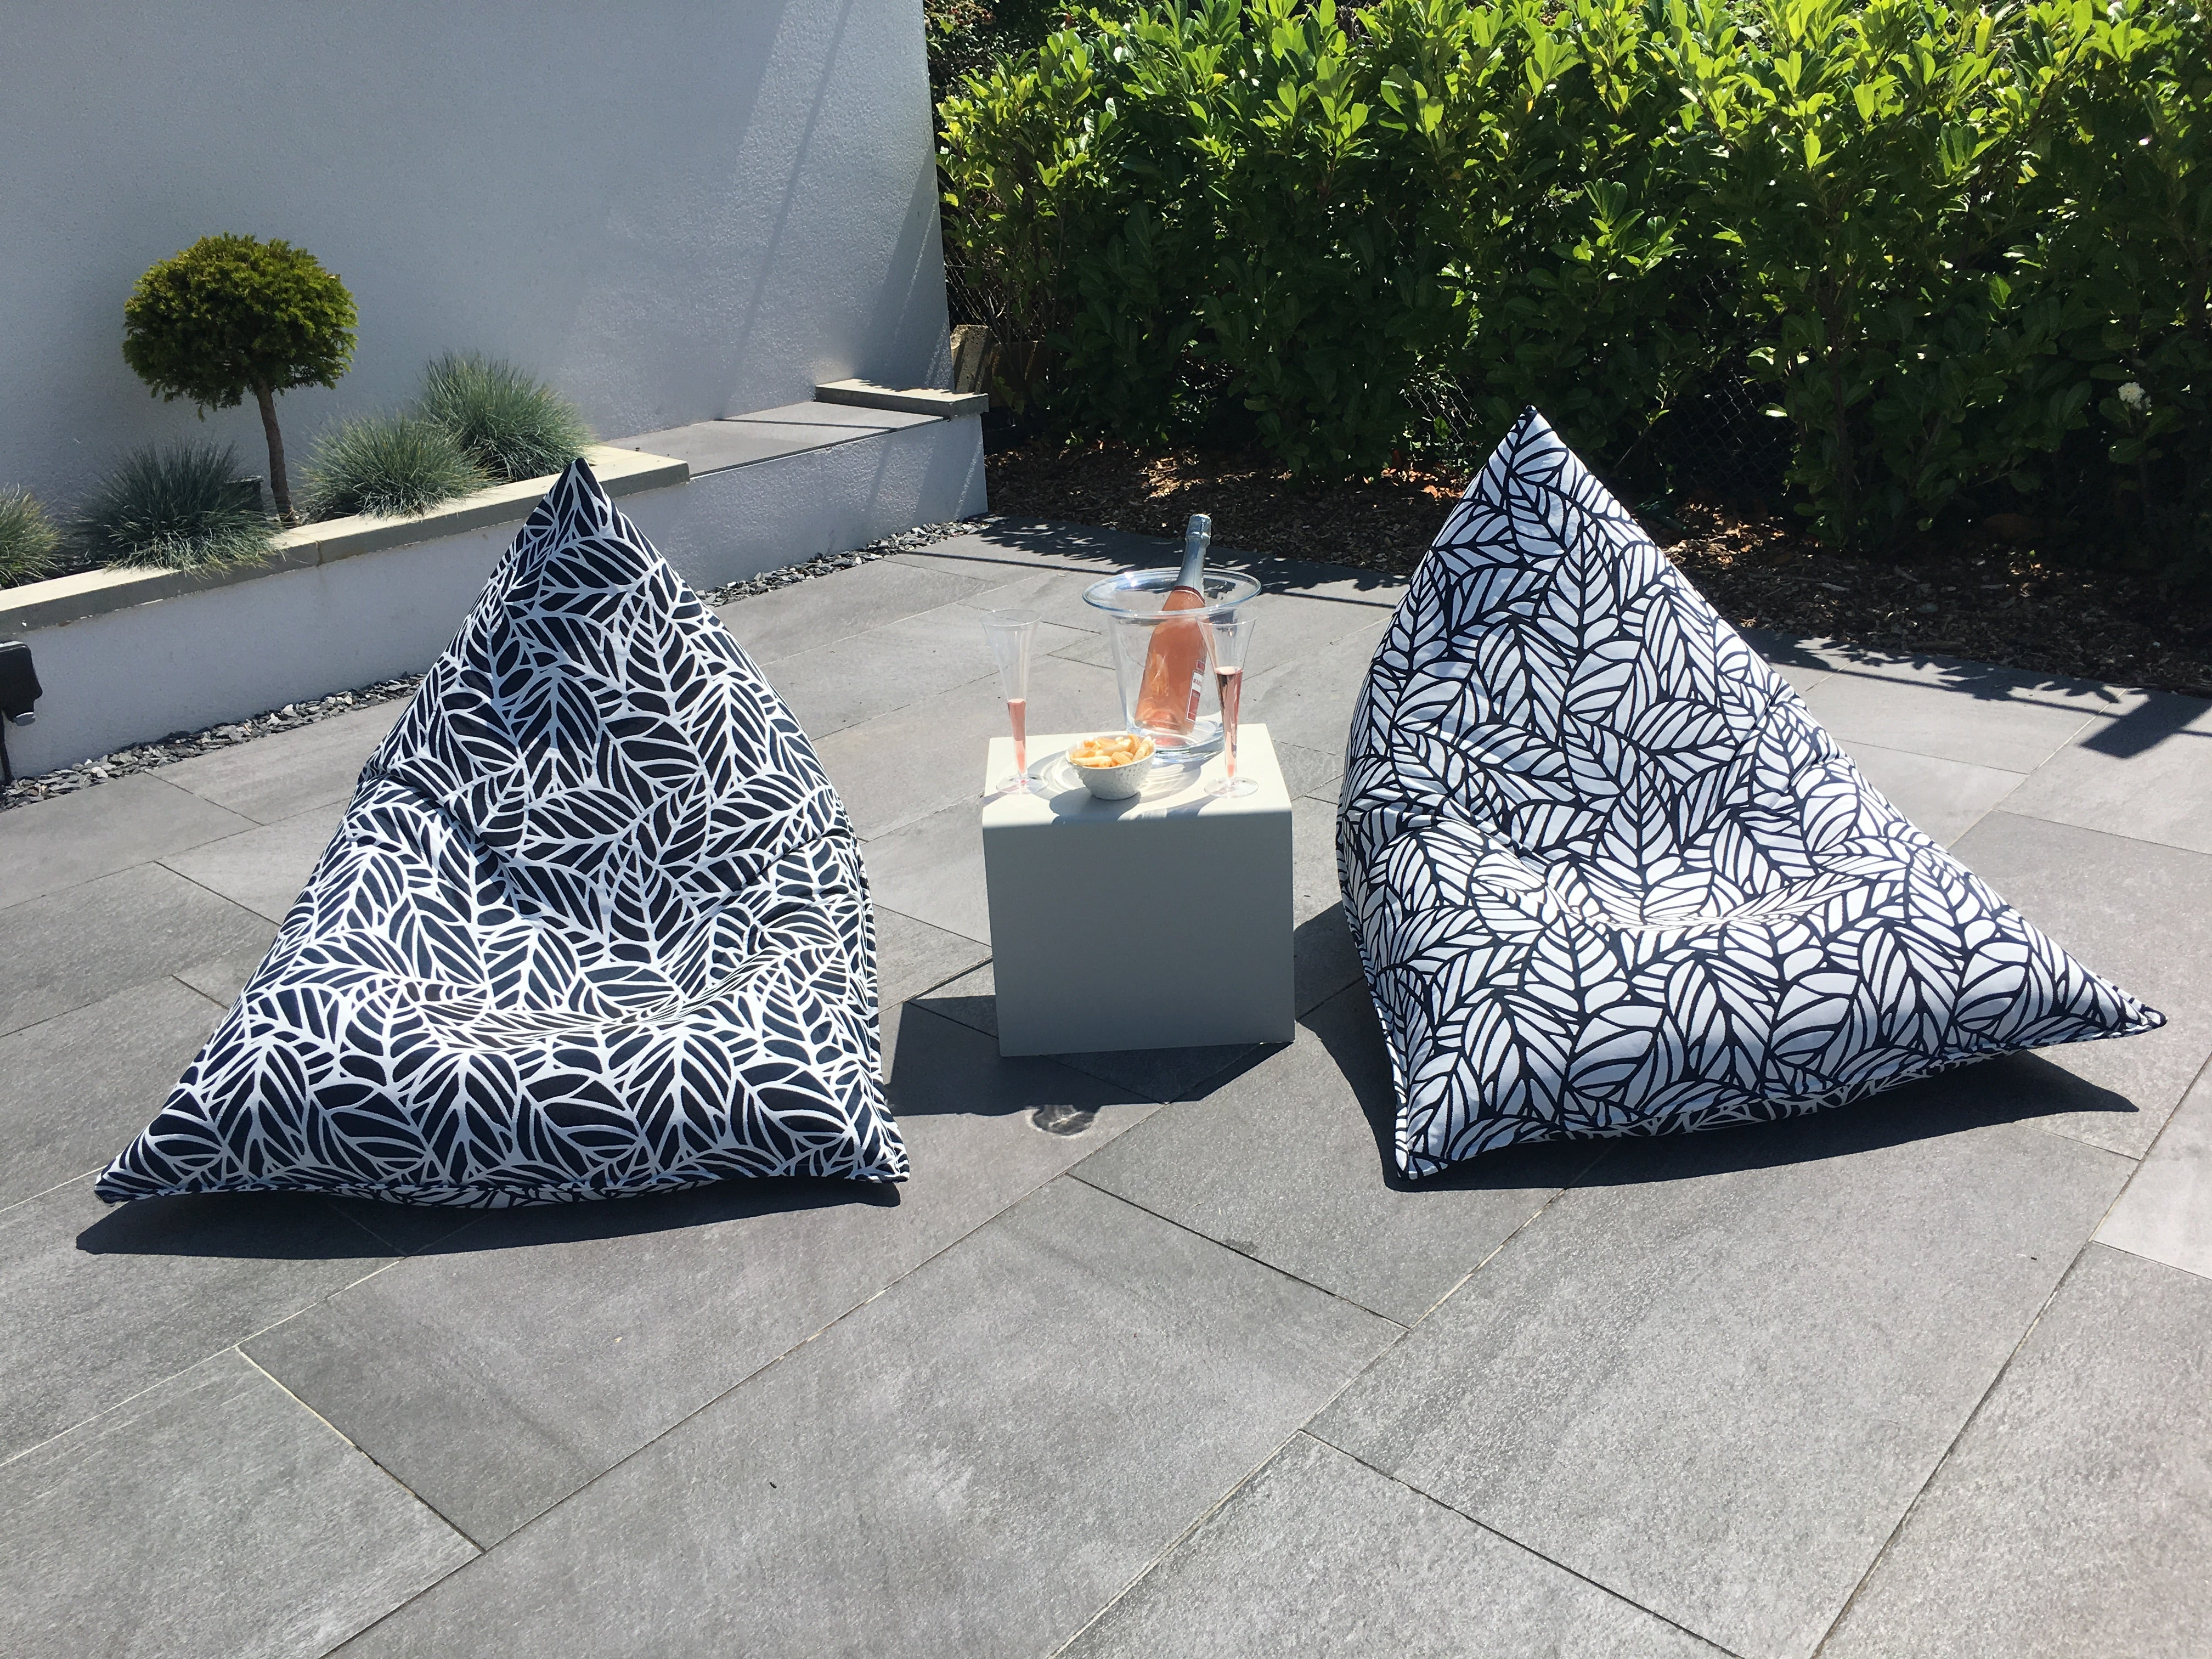 Custom monochrome bean bag chairs in a black and white palm pattern